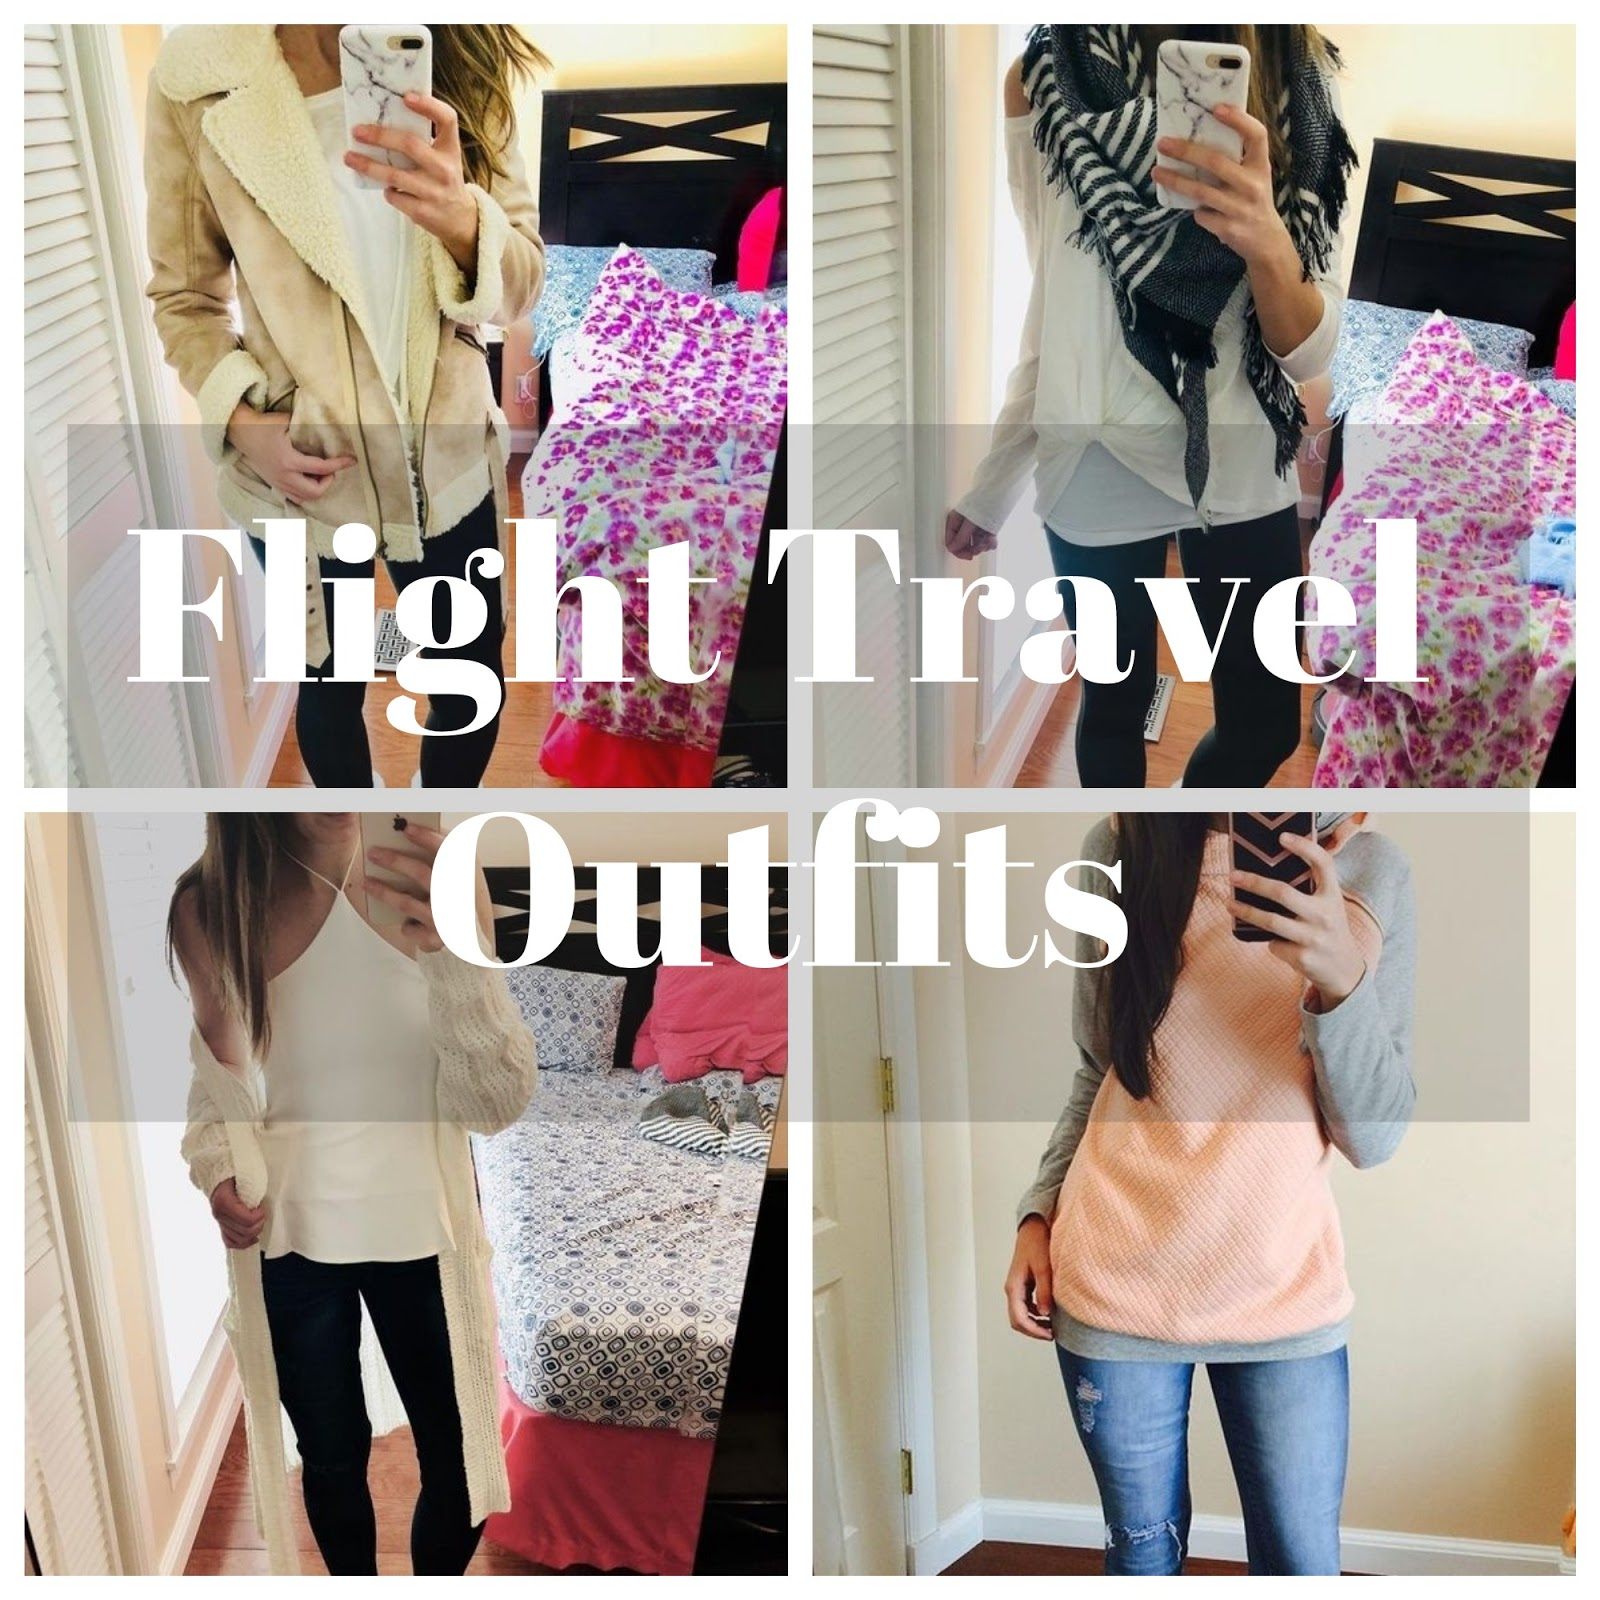 flight travel outfits, travel outfits, outfits to wear while traveling, travel, traveling, airplane outfits, pretty, flip flops, sweater and jackets on the plane, tops, dresses, what to wear on the plane,